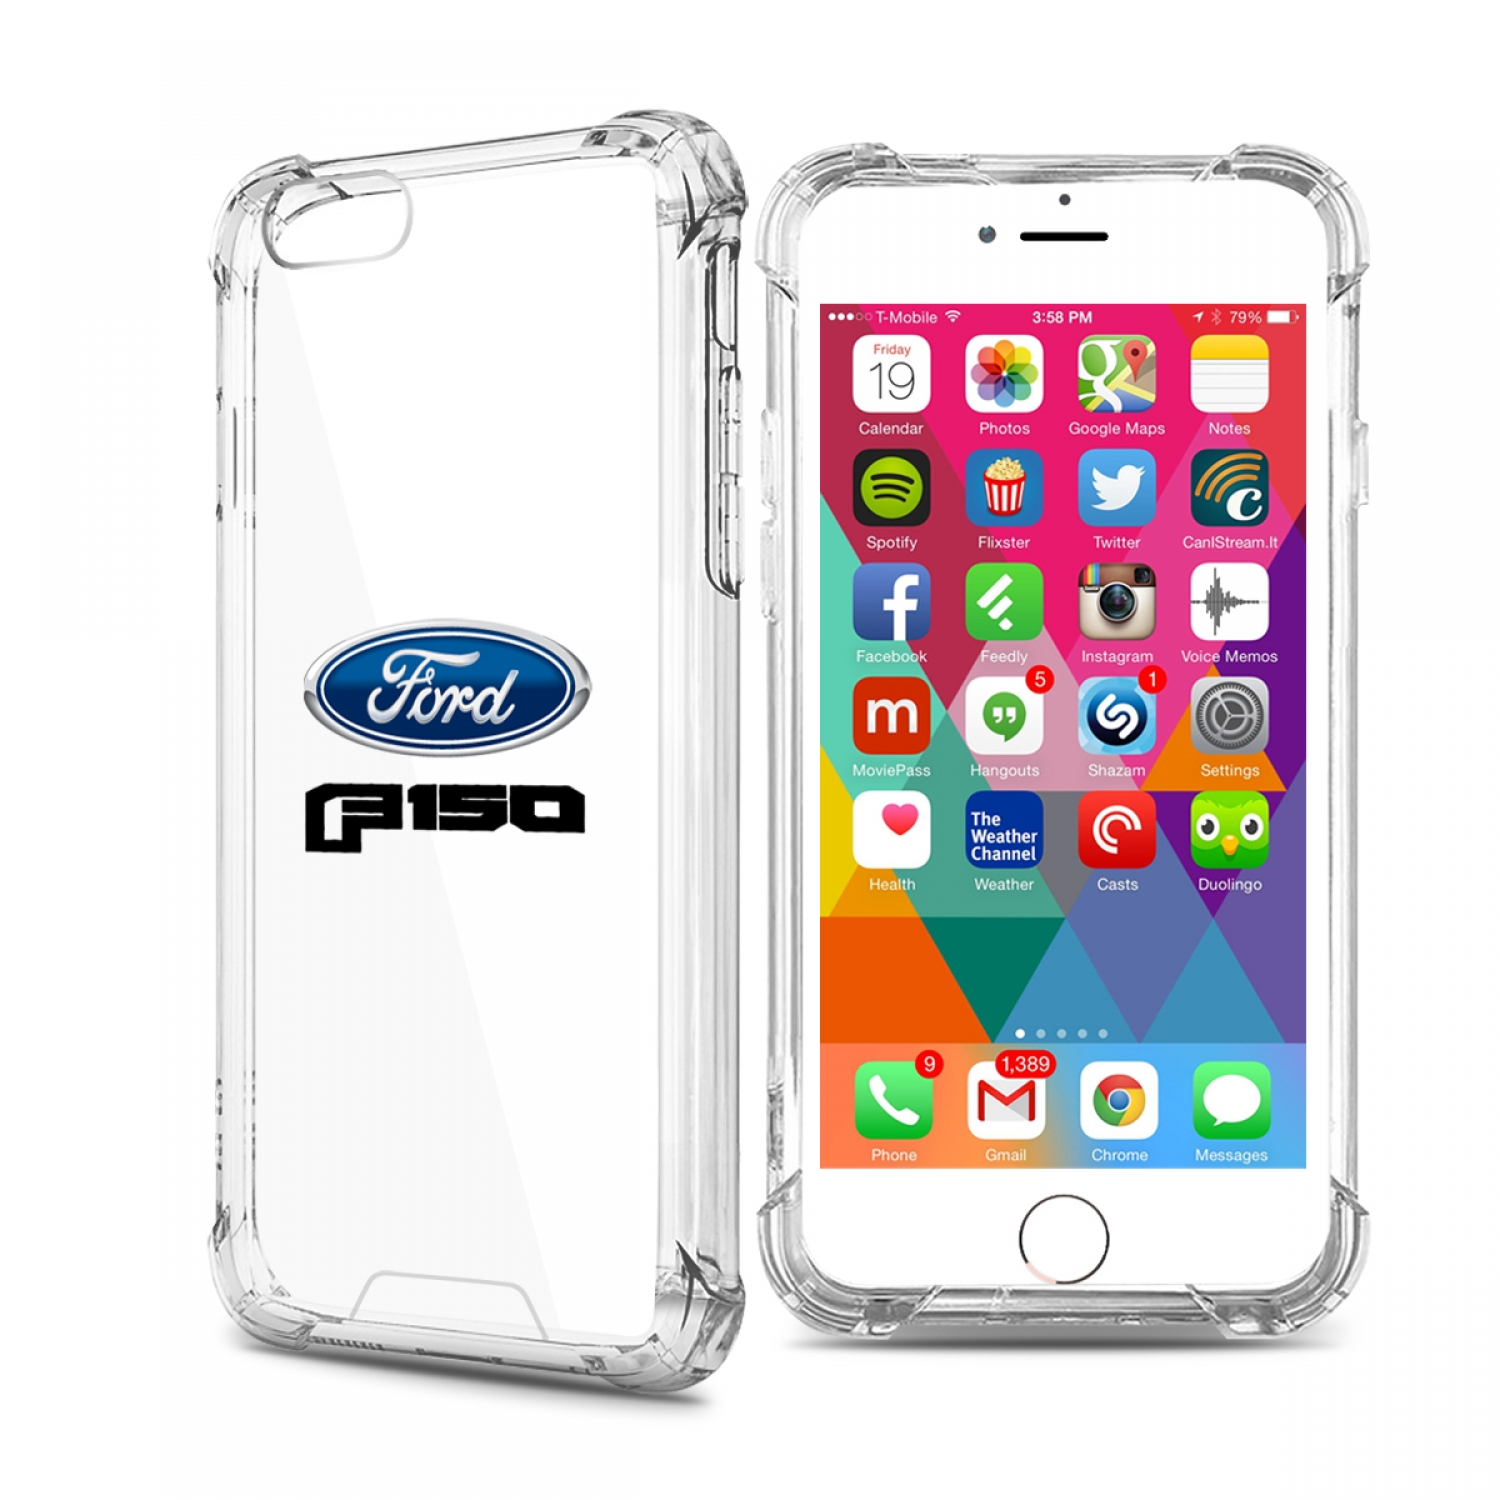 Ford F150 2015 iPhone 7 Clear TPU Shockproof Cell Phone Case